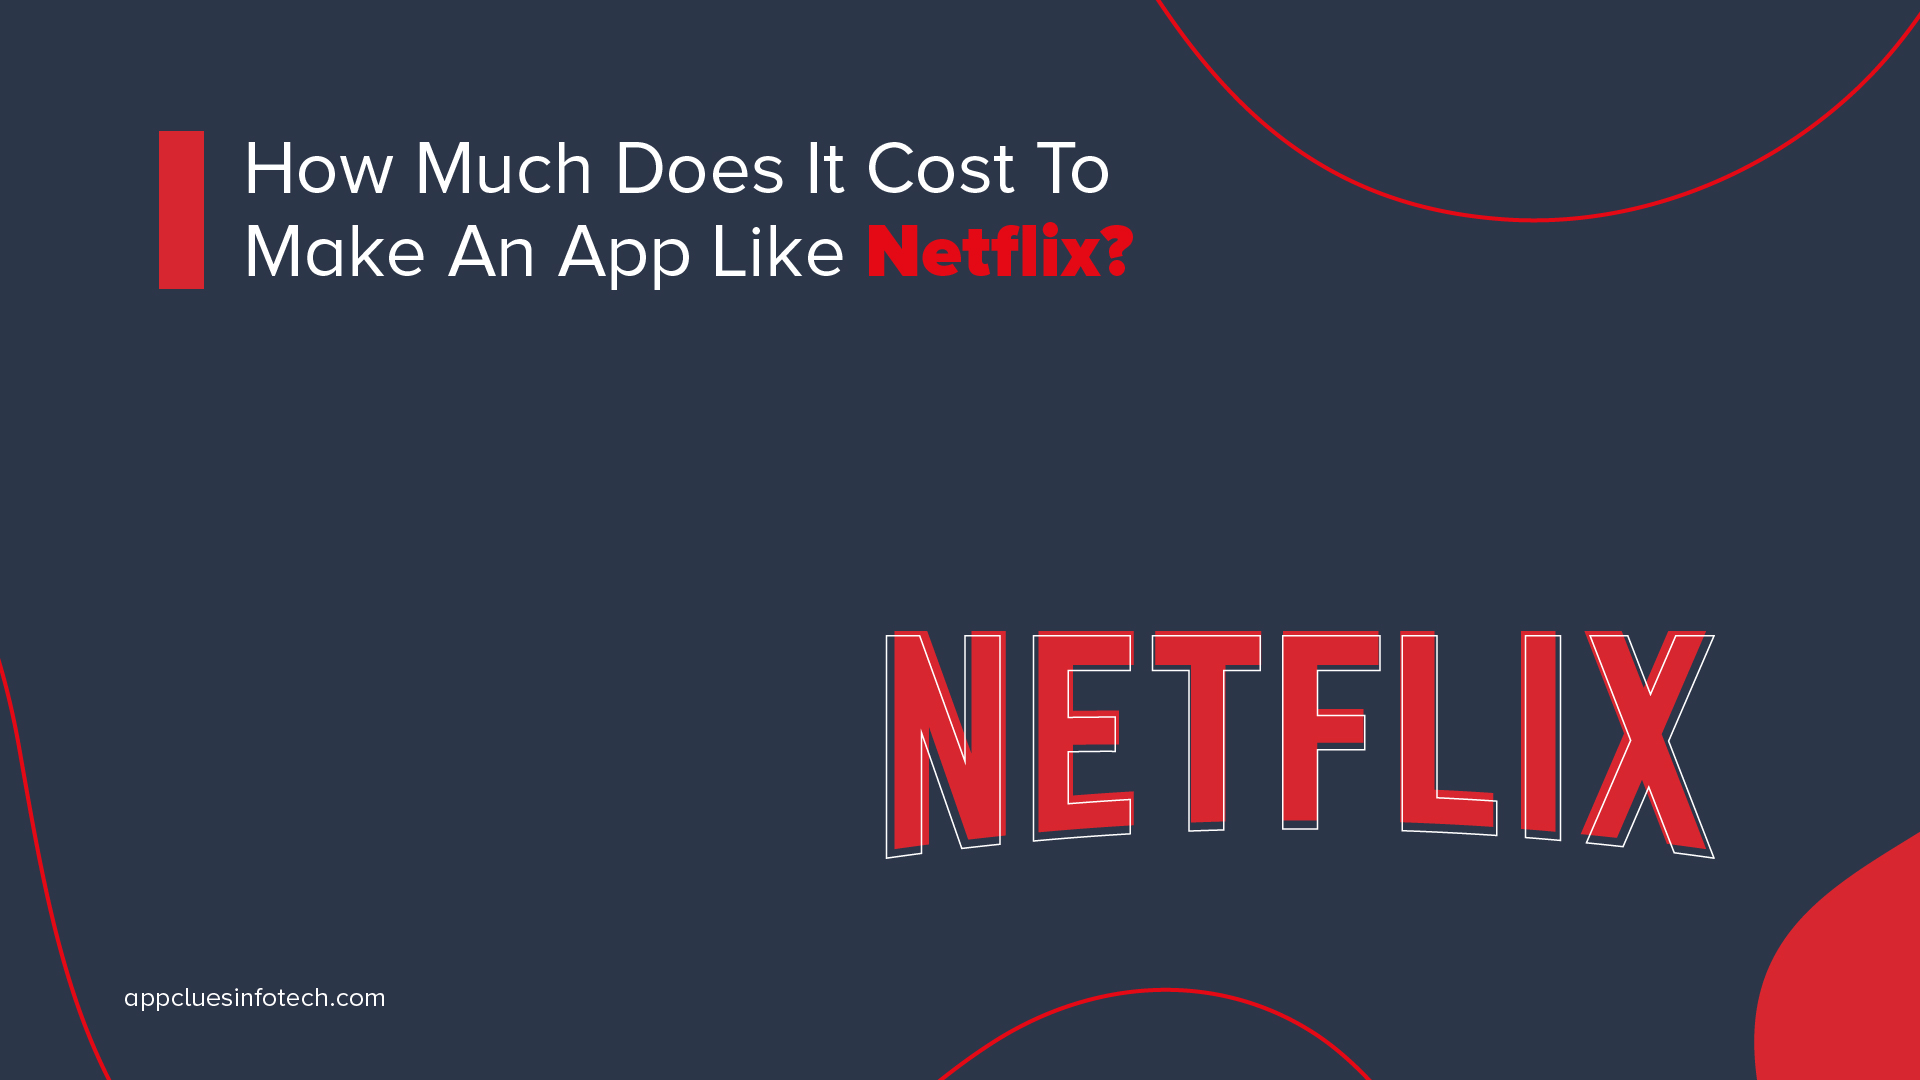 How Much Does It Cost To Make An App Like Netflix